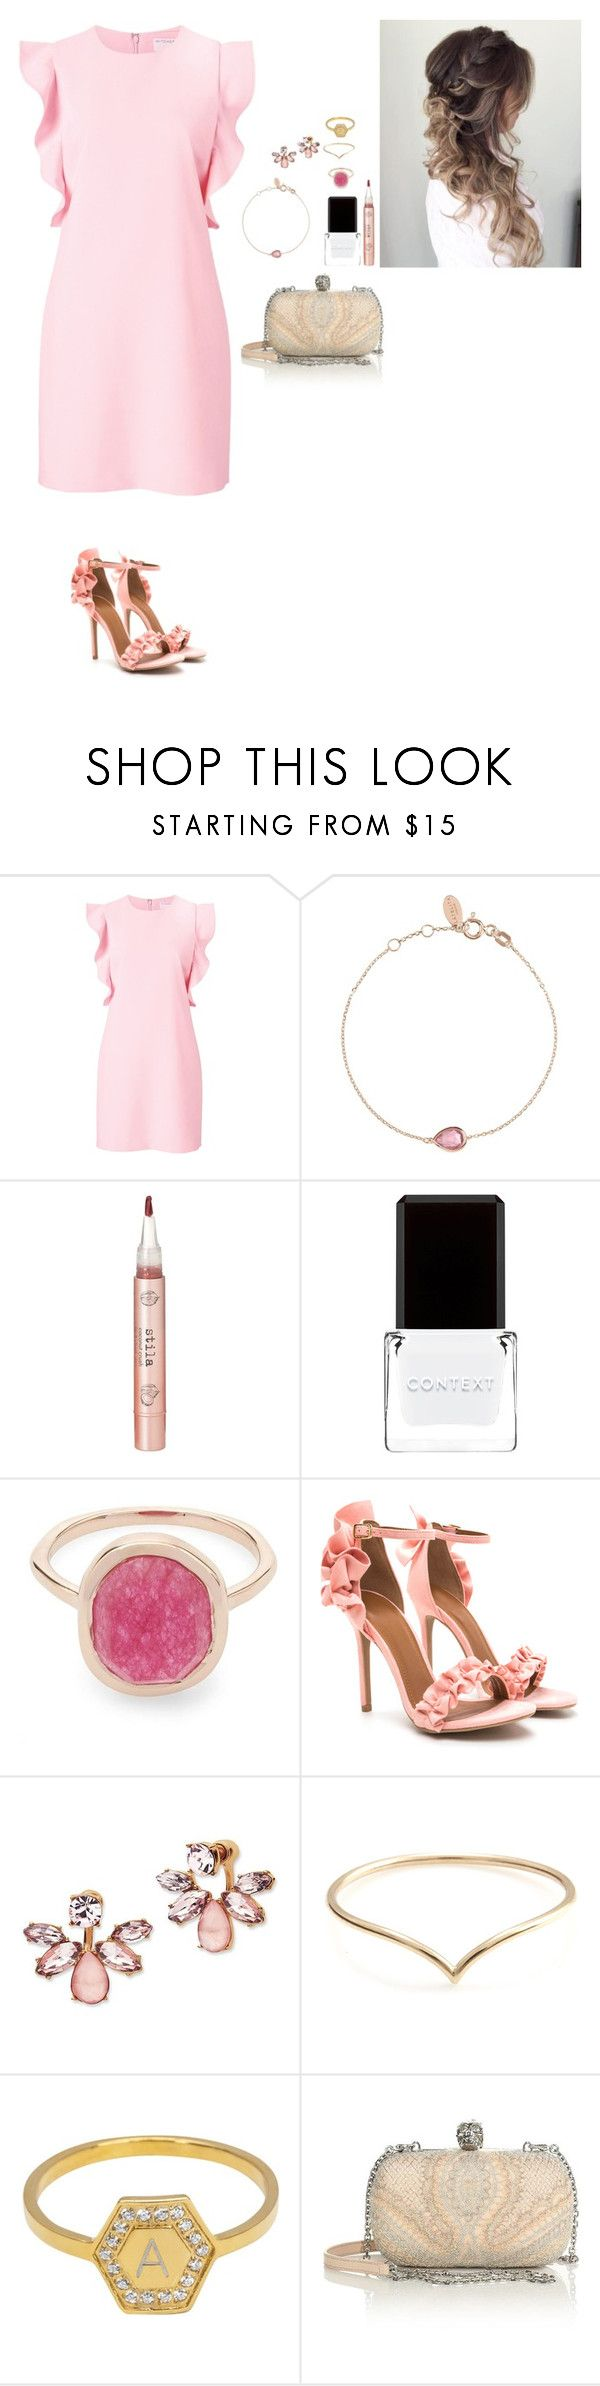 """""""Untitled #1418"""" by lexiaf on Polyvore featuring Witchery, Stila, Context, Liberty, Marchesa, Lola James Jewelry and Alexander McQueen"""